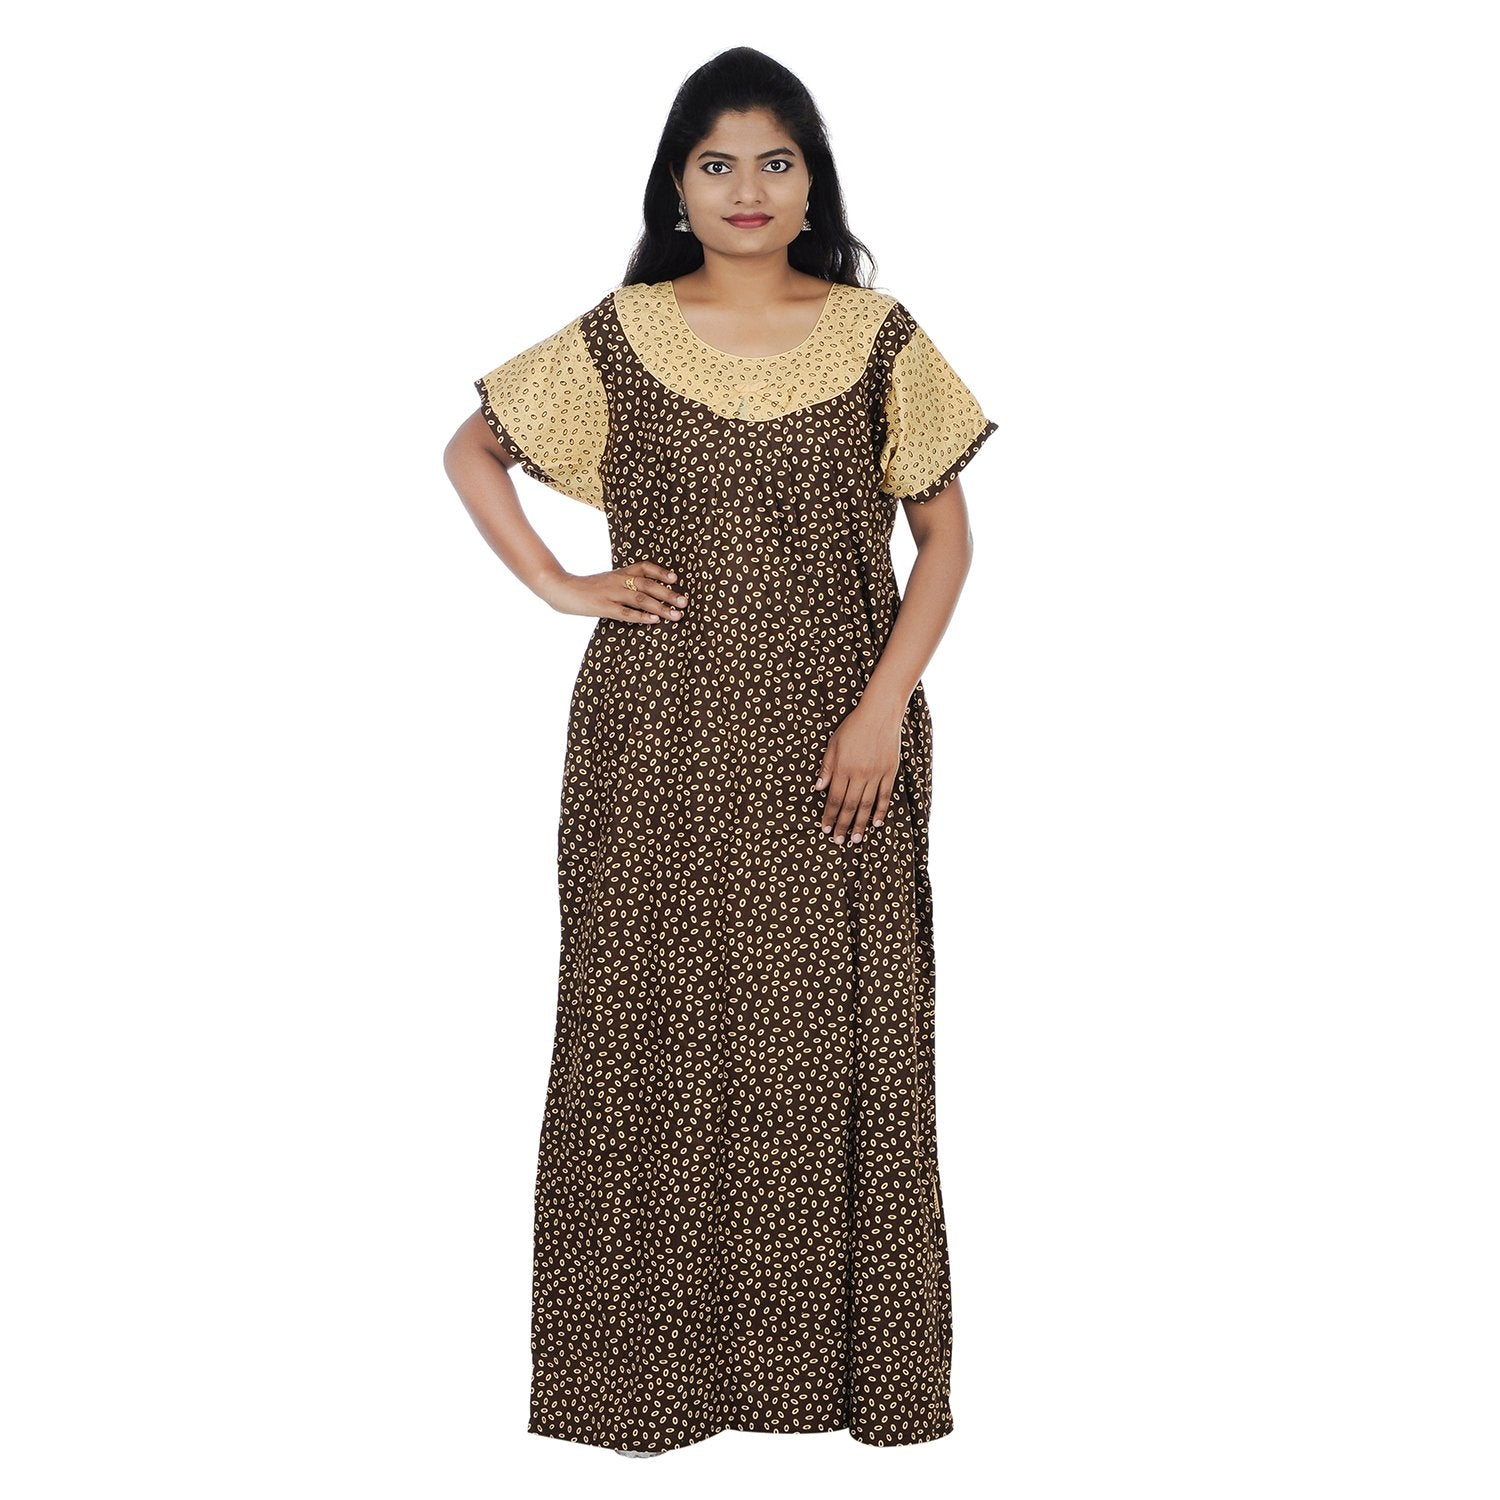 be1d3ad202 Buy Brown and Beige Color Cotton Free Size Nighty | Zinnga